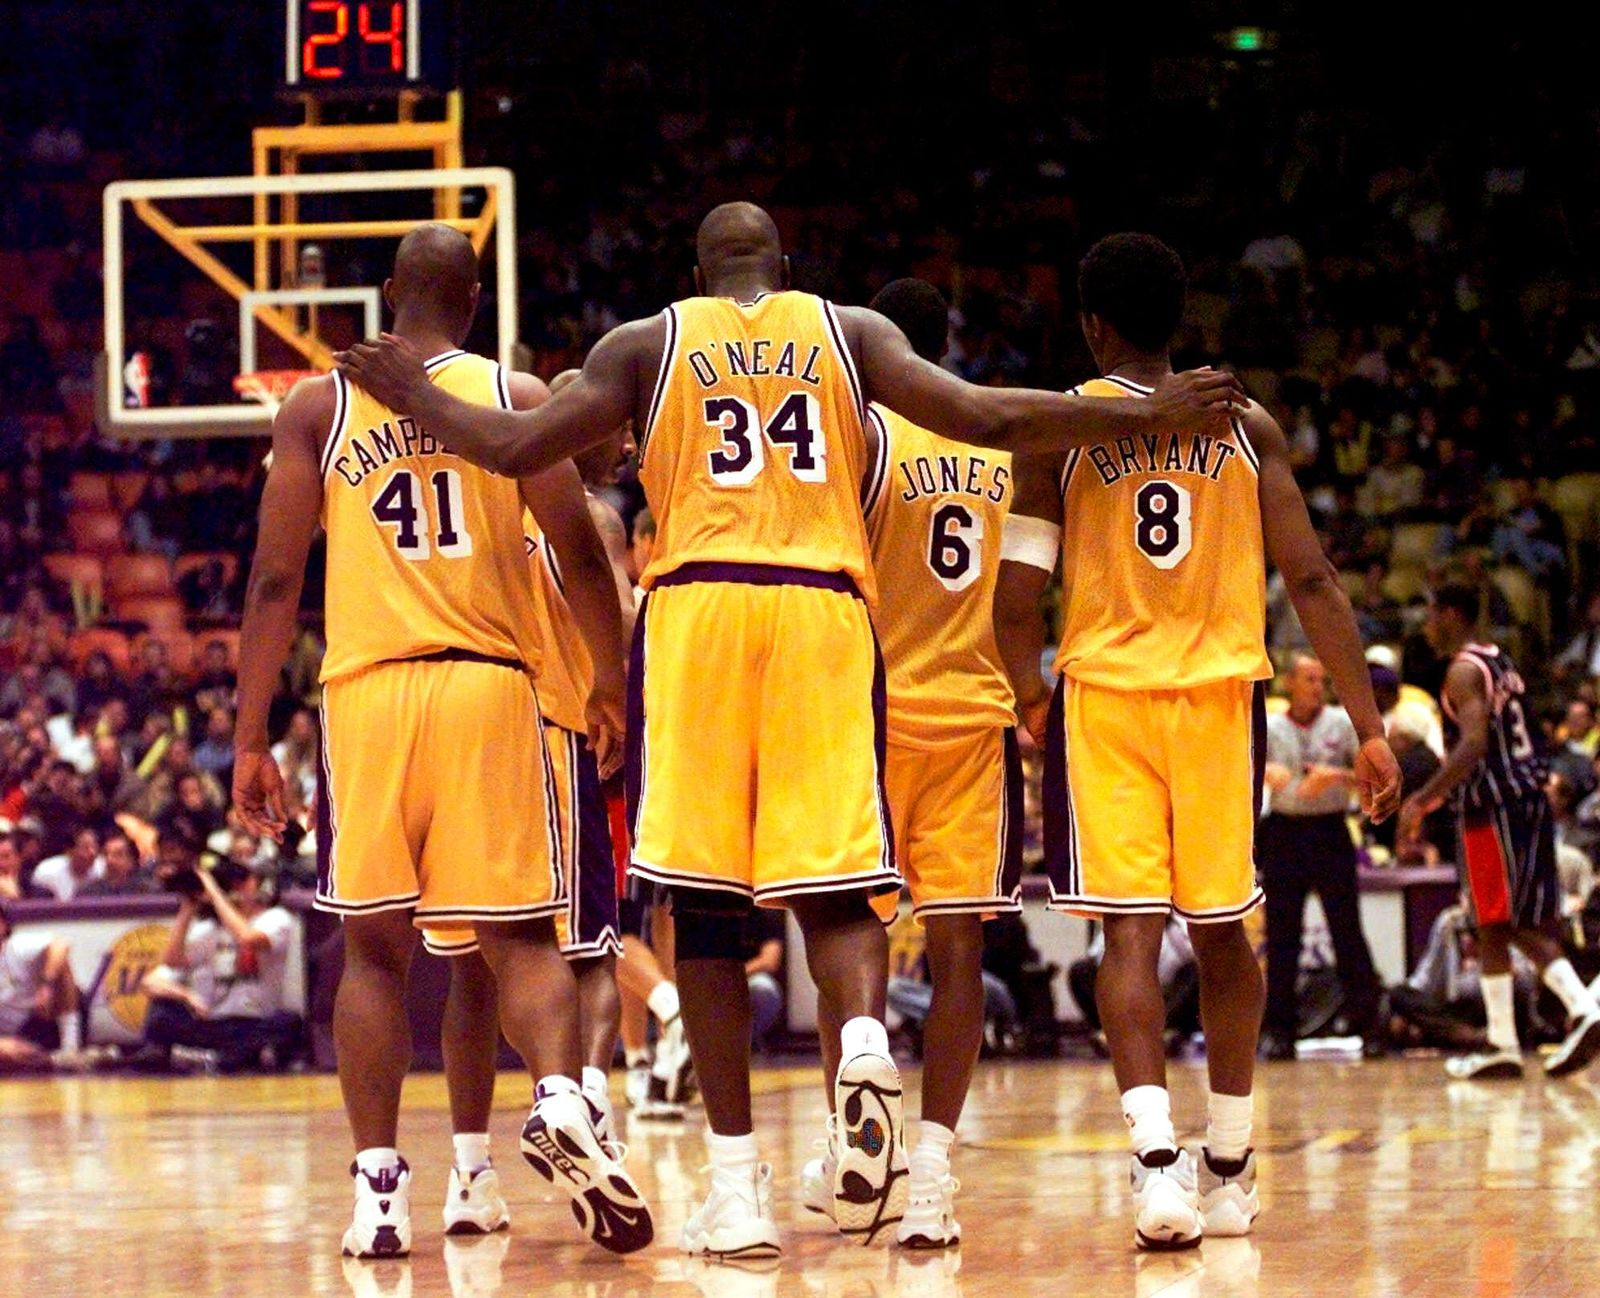 FILE - In this Feb. 5, 1999, file photo, Los Angeles Lakers center Shaquille O'Neal (34) puts his arms around teammates, Elden Campbell (41) and Kobe Bryant (8) as Eddie Jones (6) and Derek Harper walk in front as they return to play the Houston Rockets in the fourth quarter at the Great Western Forum in Inglewood, Calif. Bryant, the 18-time NBA All-Star who won five championships and became one of the greatest basketball players of his generation during a 20-year career with the Los Angeles Lakers, died in a helicopter crash Sunday, Jan. 26, 2020. (AP Photo/ Victoria Arocho, File)